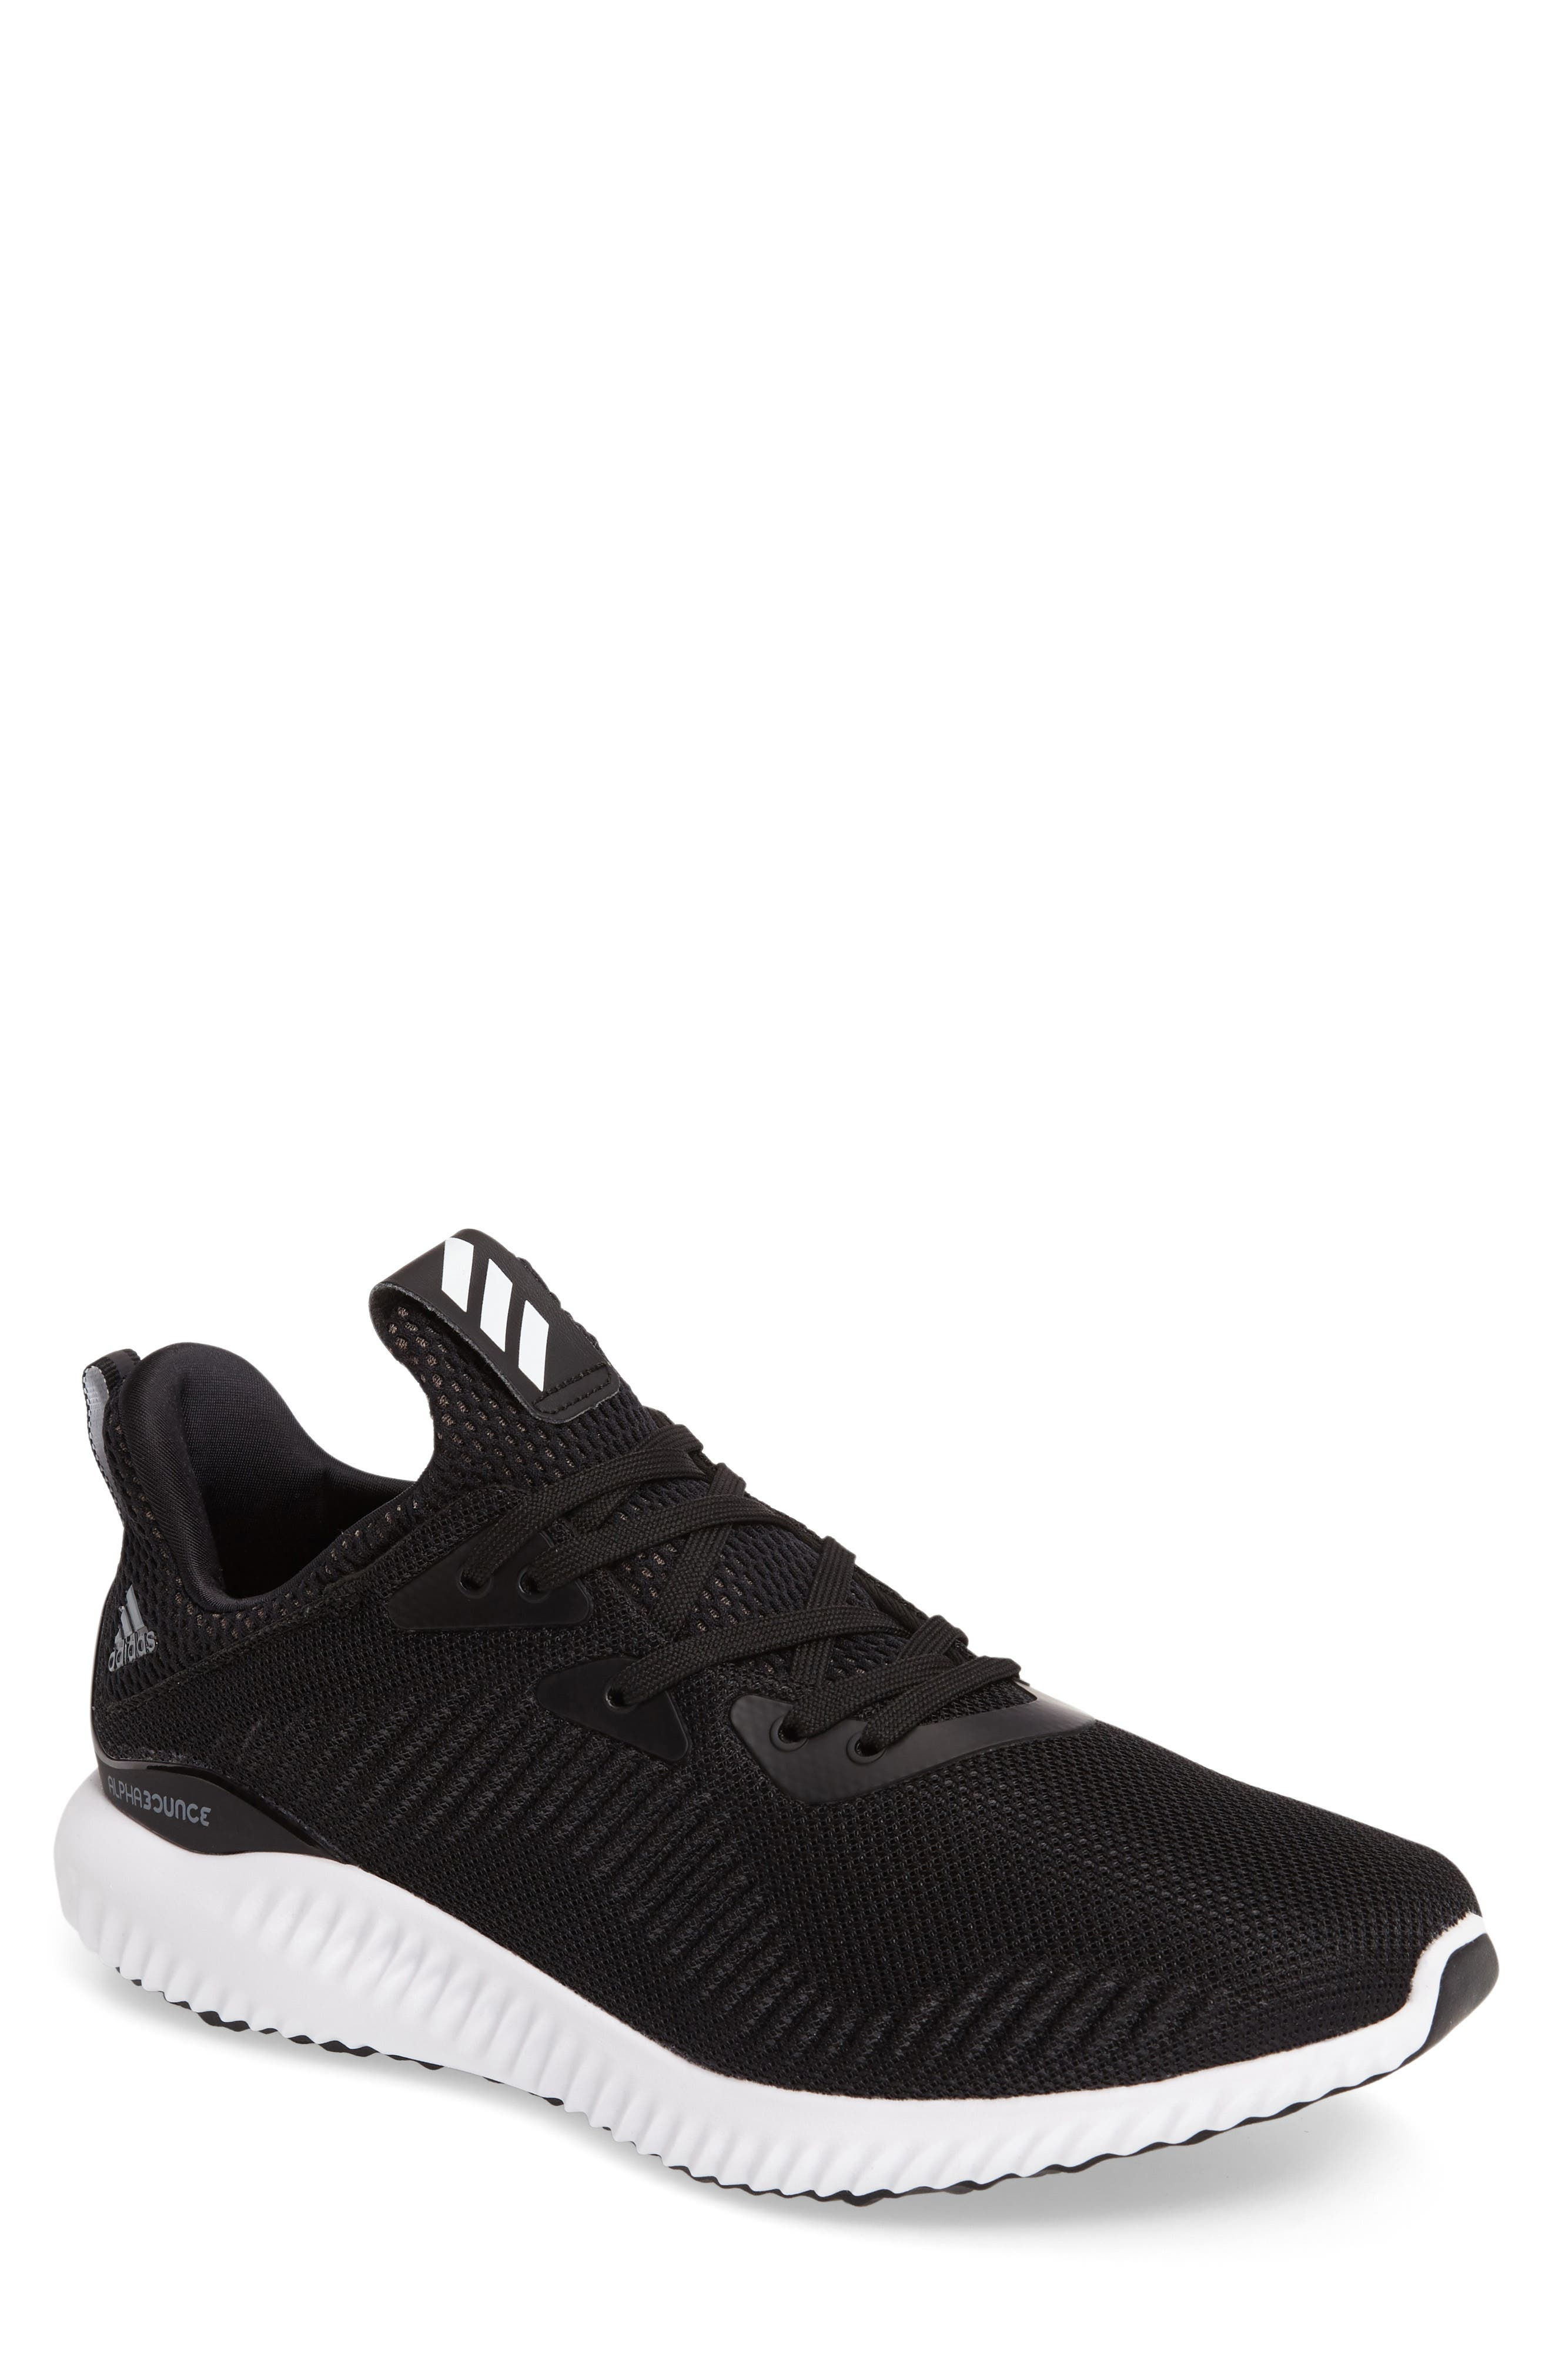 ADIDAS AlphaBounce Running Shoe, Main, color, 002